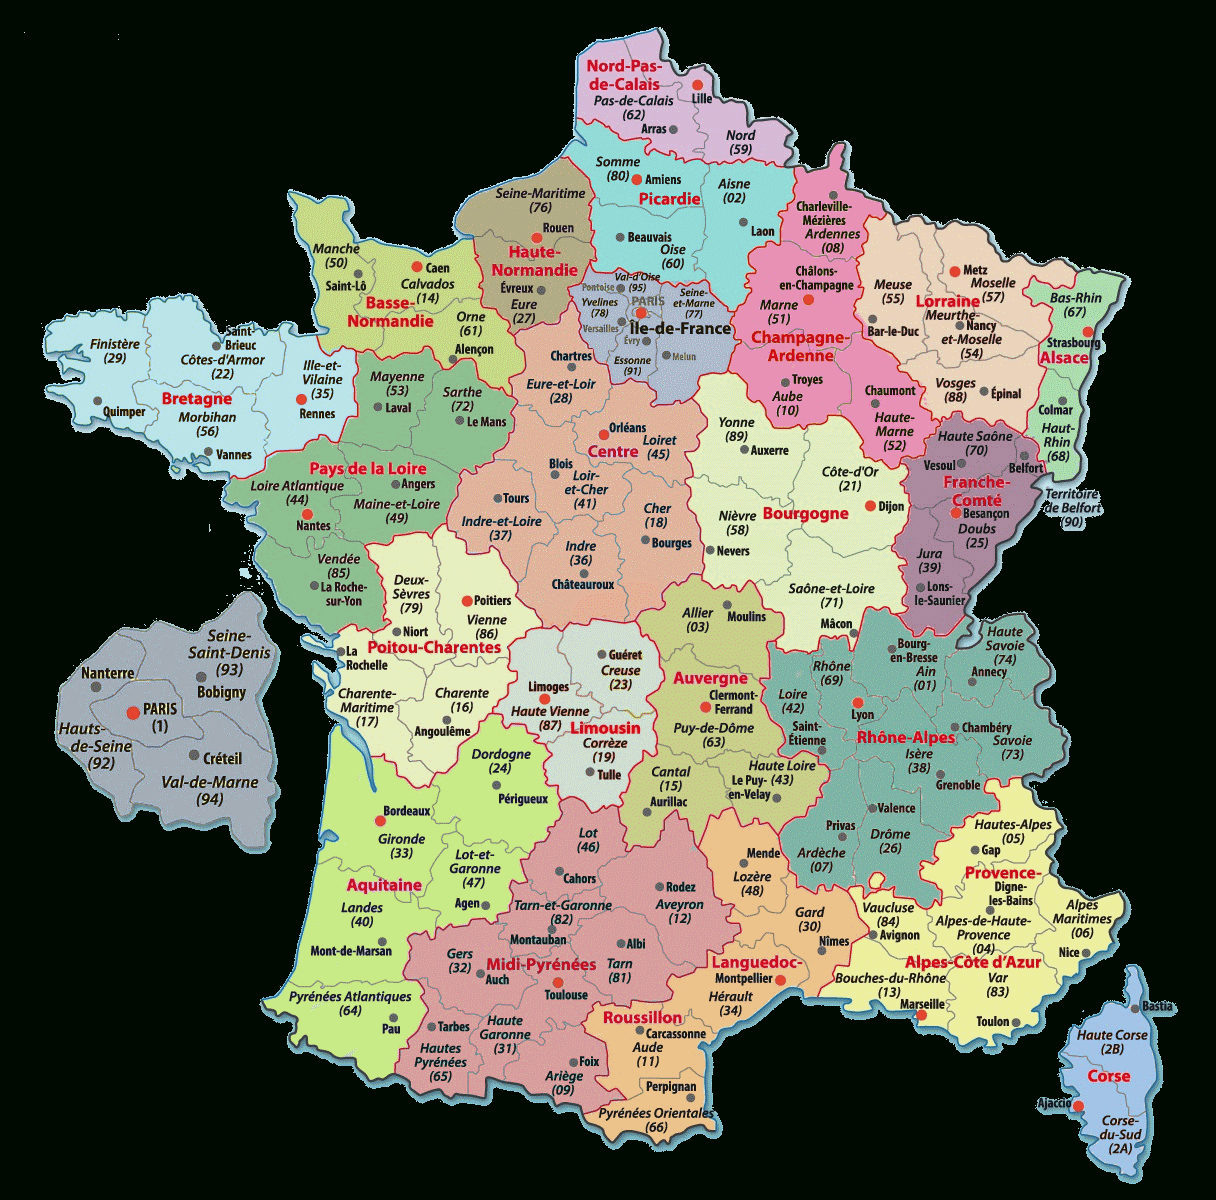 Carte De France Departements : Carte Des Départements De France pour Carte De France Imprimable